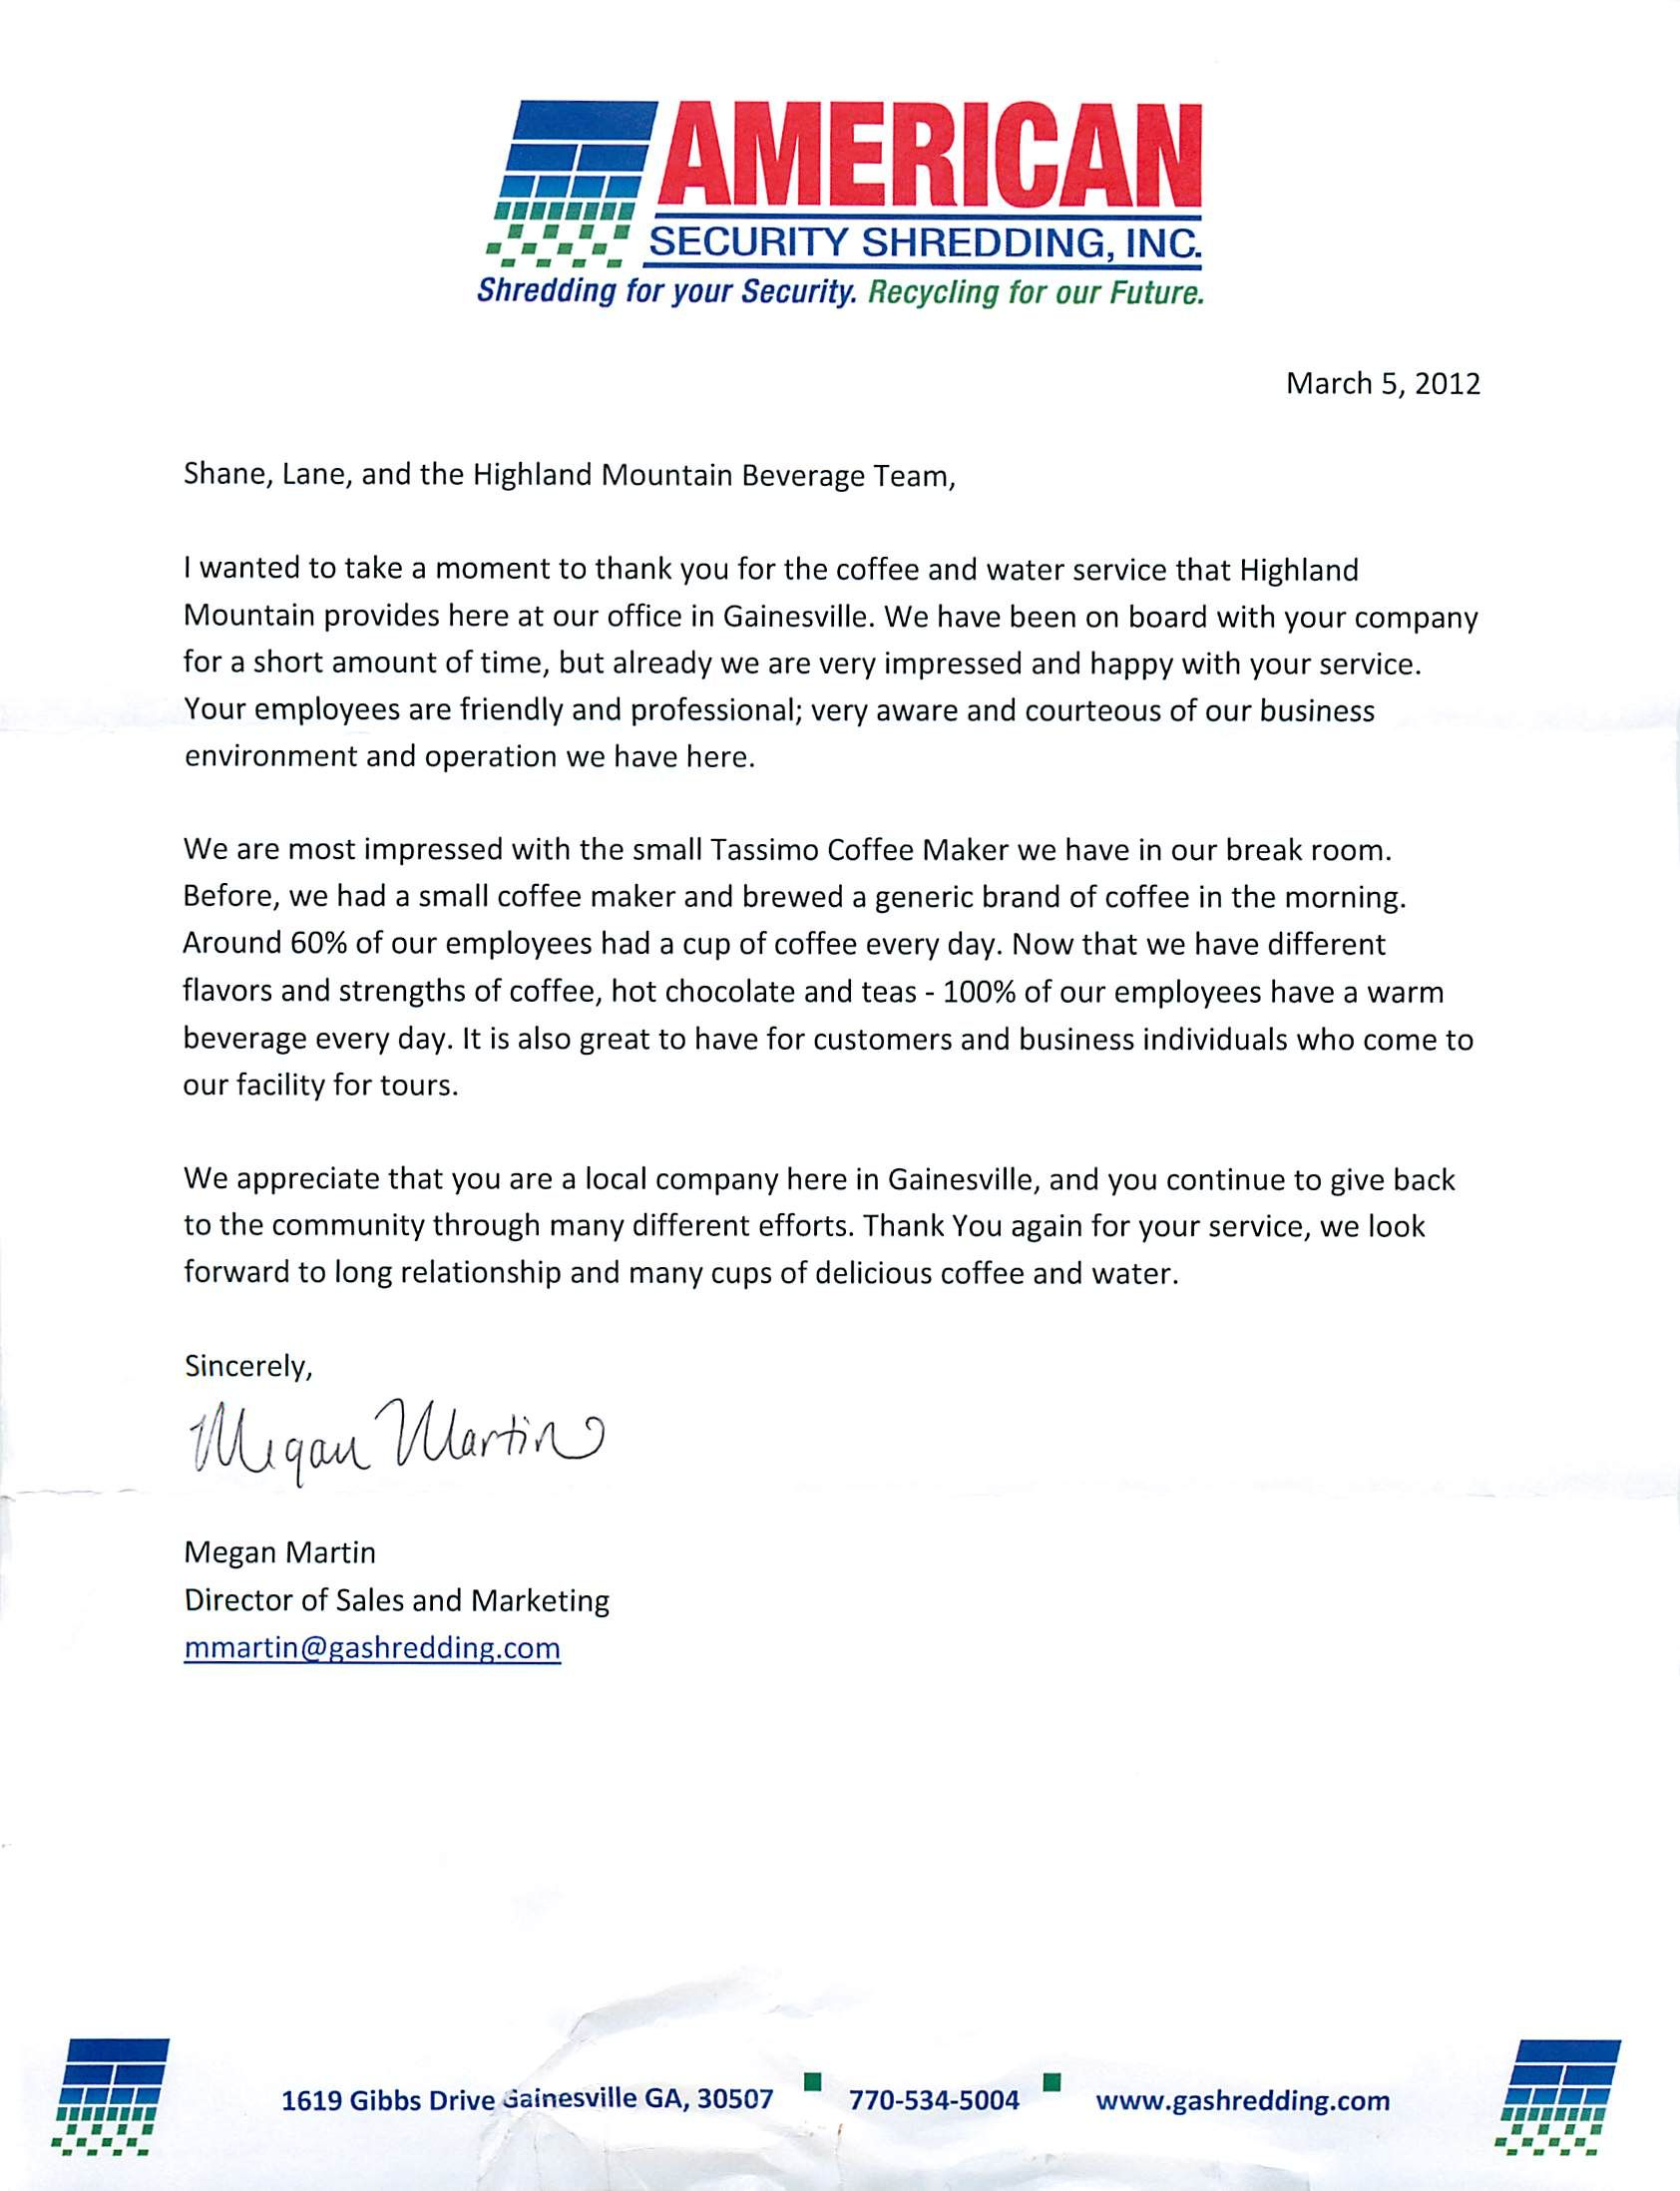 customer appreciation letter highland mountain water thanking format best template collection